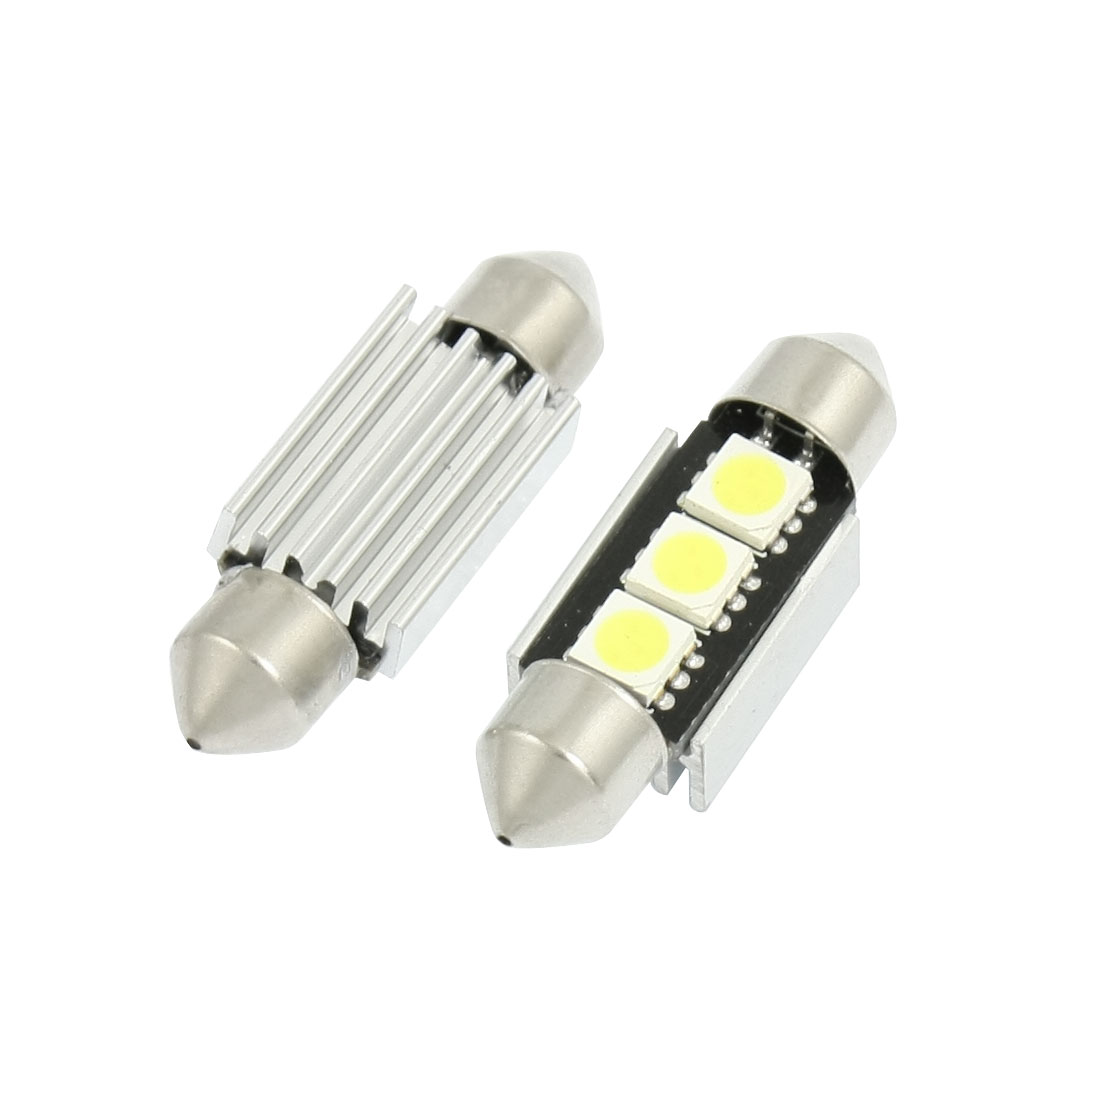 2 Pcs Car 5050 White SMD 3 LED Error Free Canbus License Plate Light 36mm w Heatsink internal